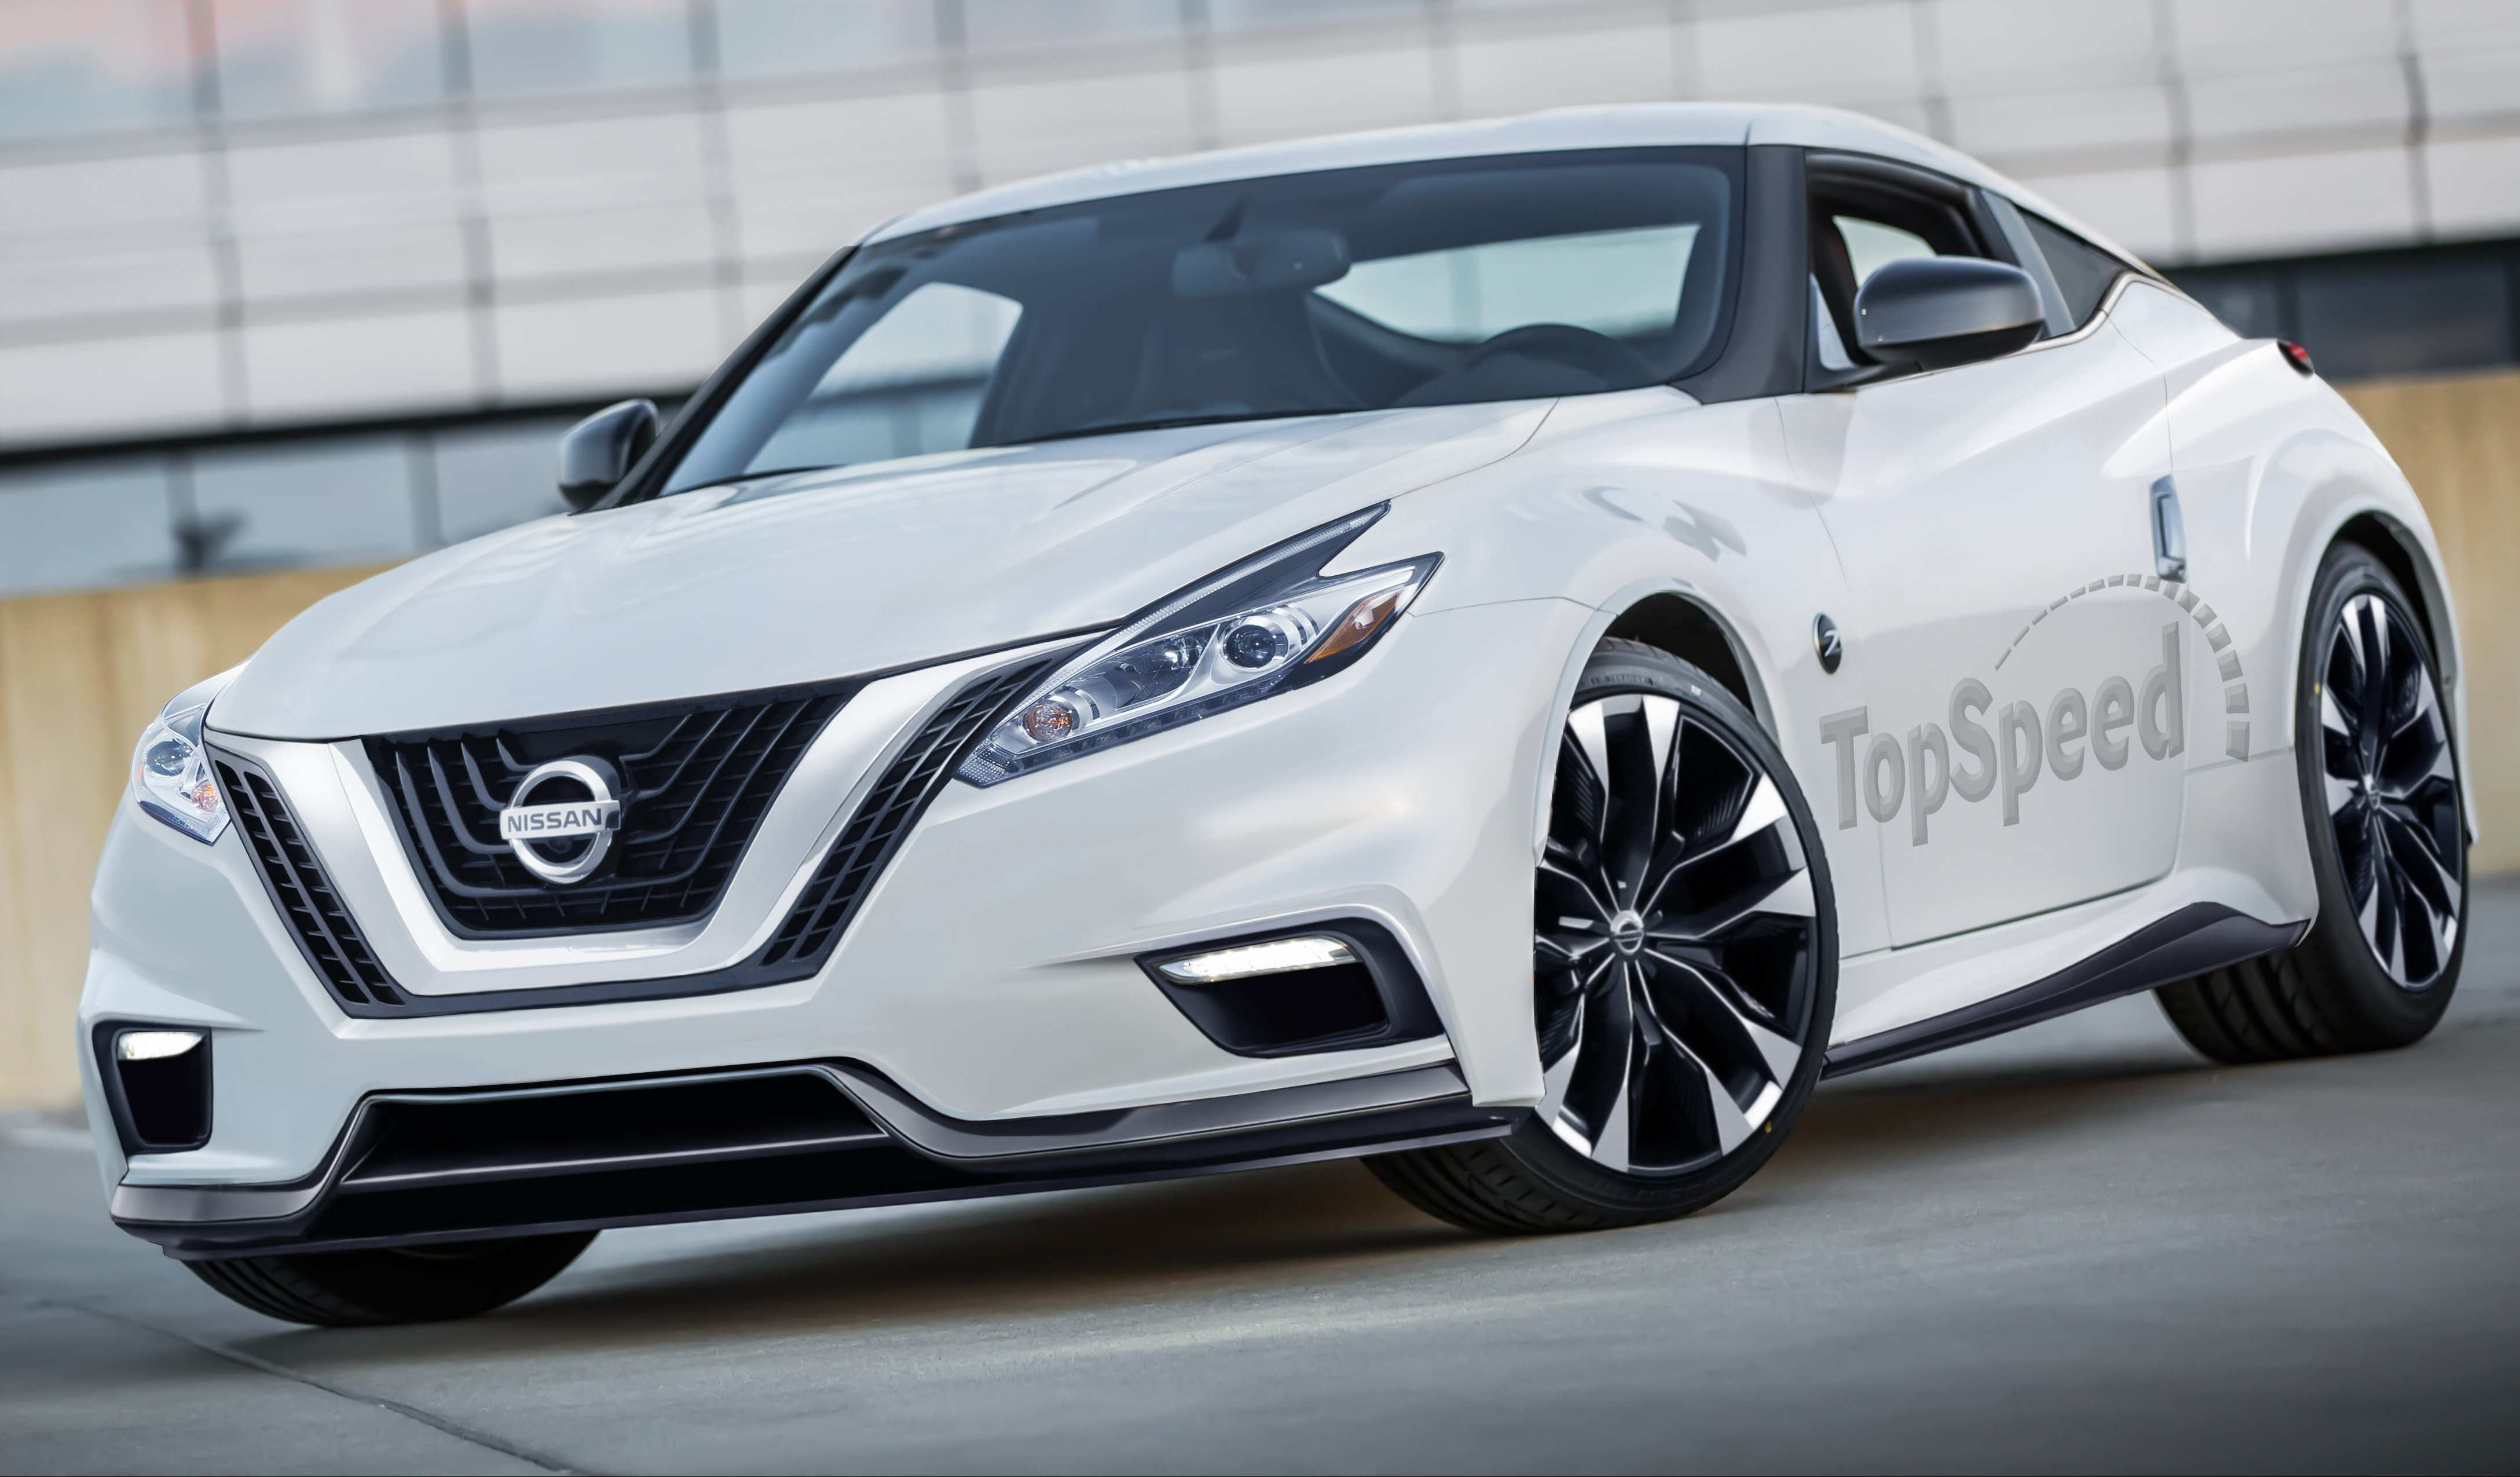 60 Concept of Nissan Datsun 2020 Review with Nissan Datsun 2020